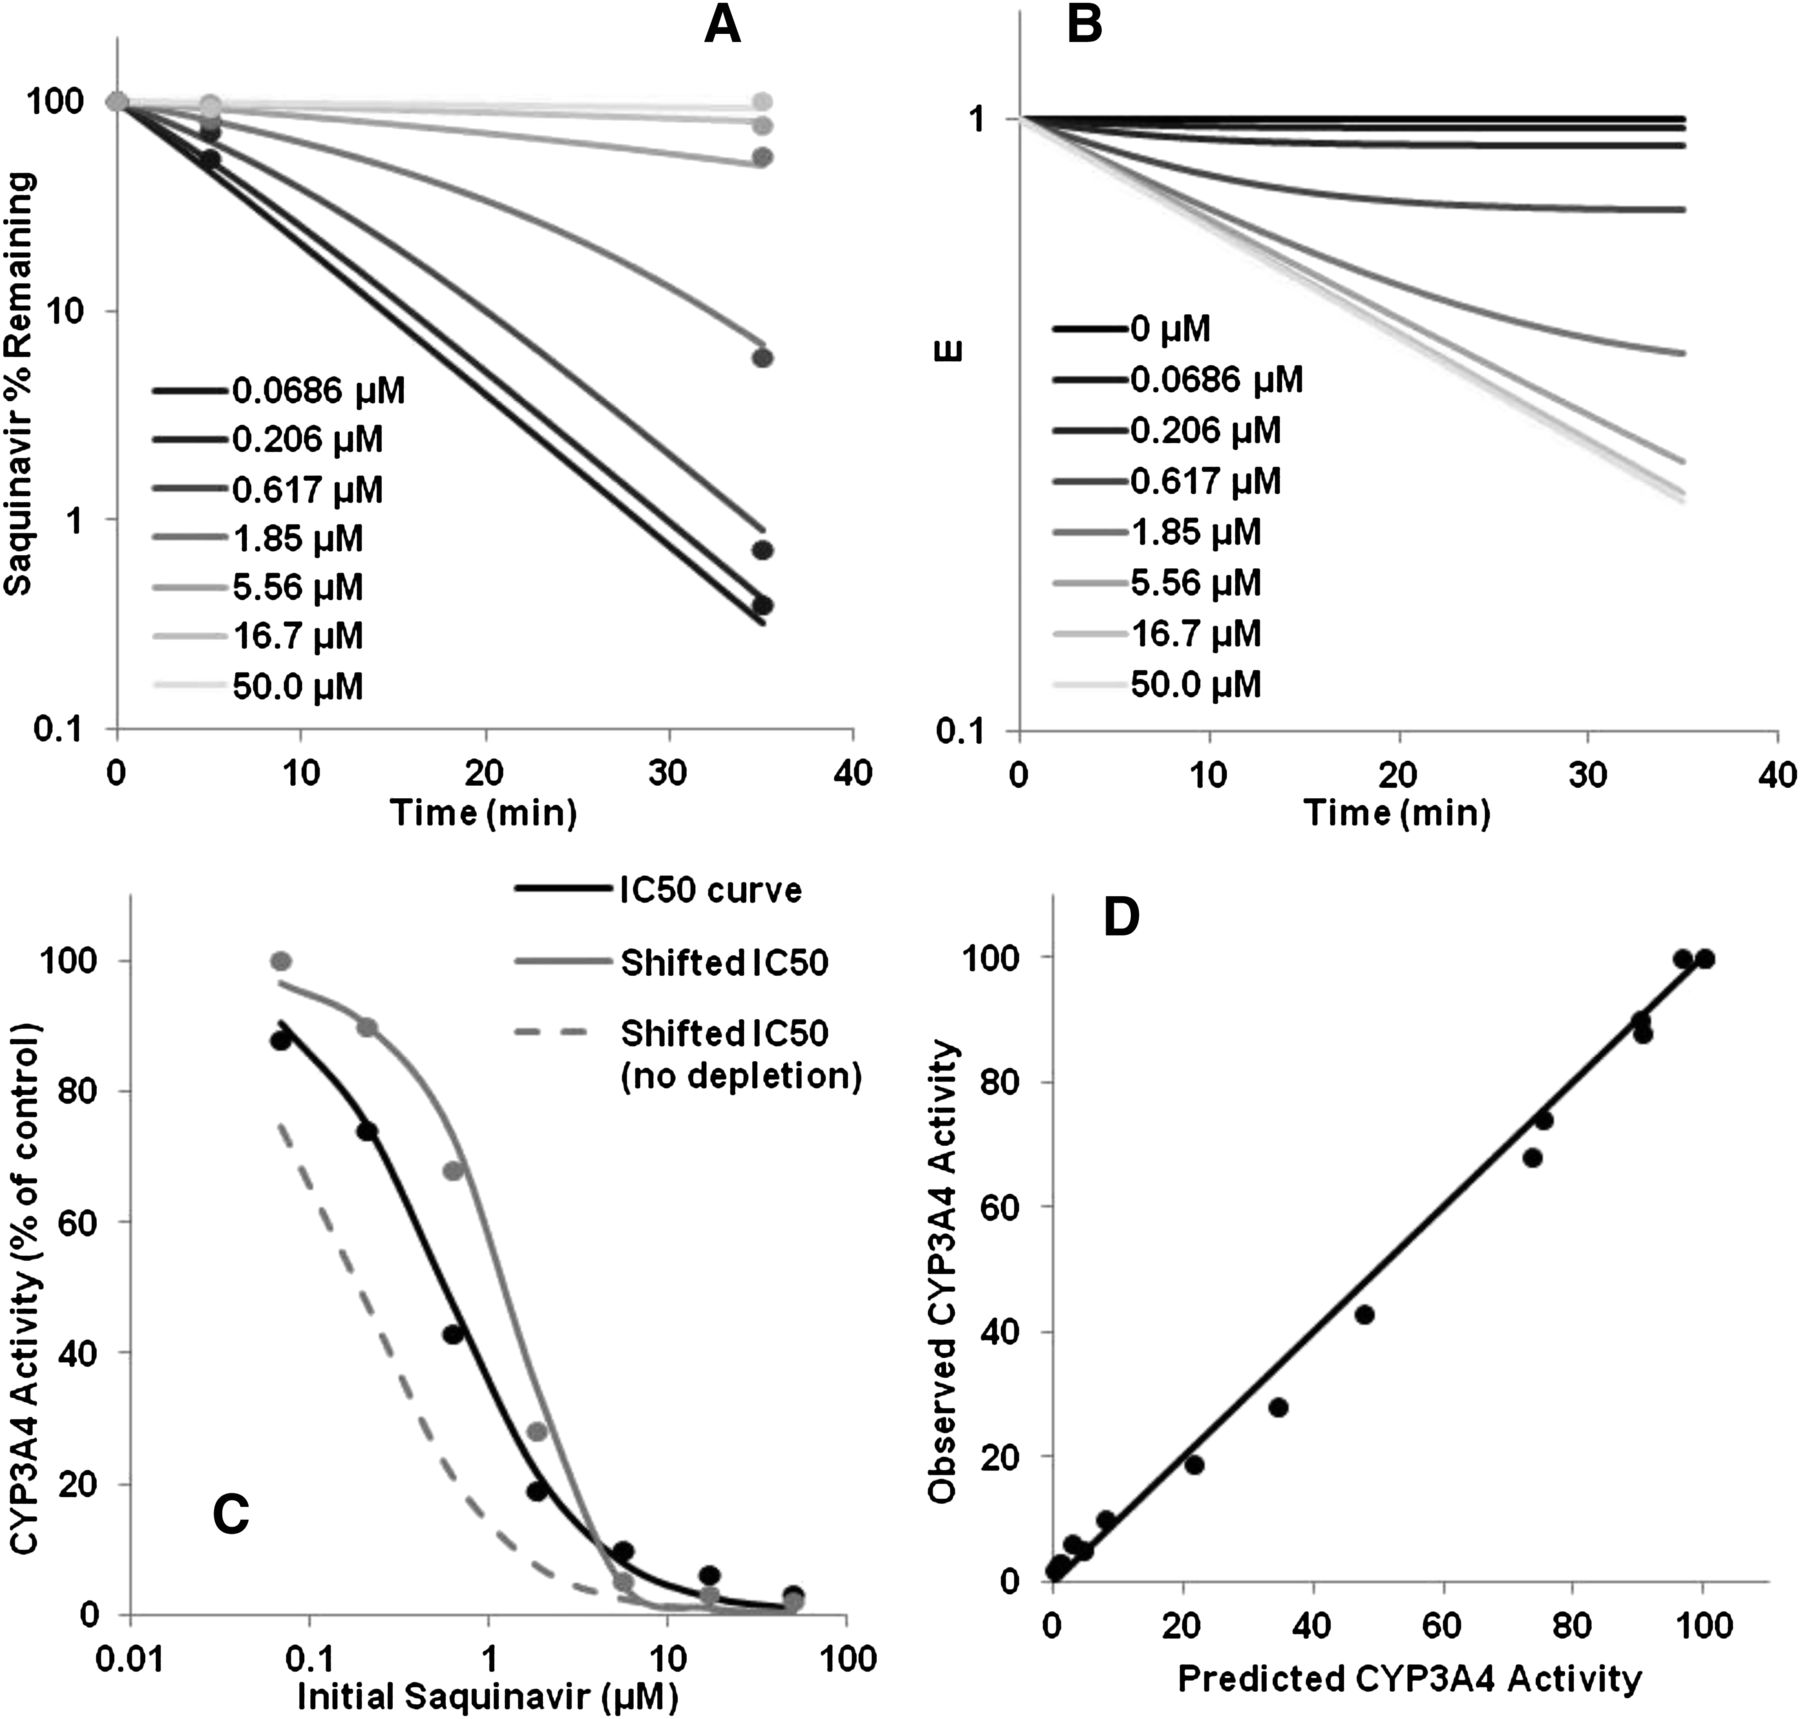 Dynamic Modeling of Cytochrome P450 Inhibition In Vitro: Impact of